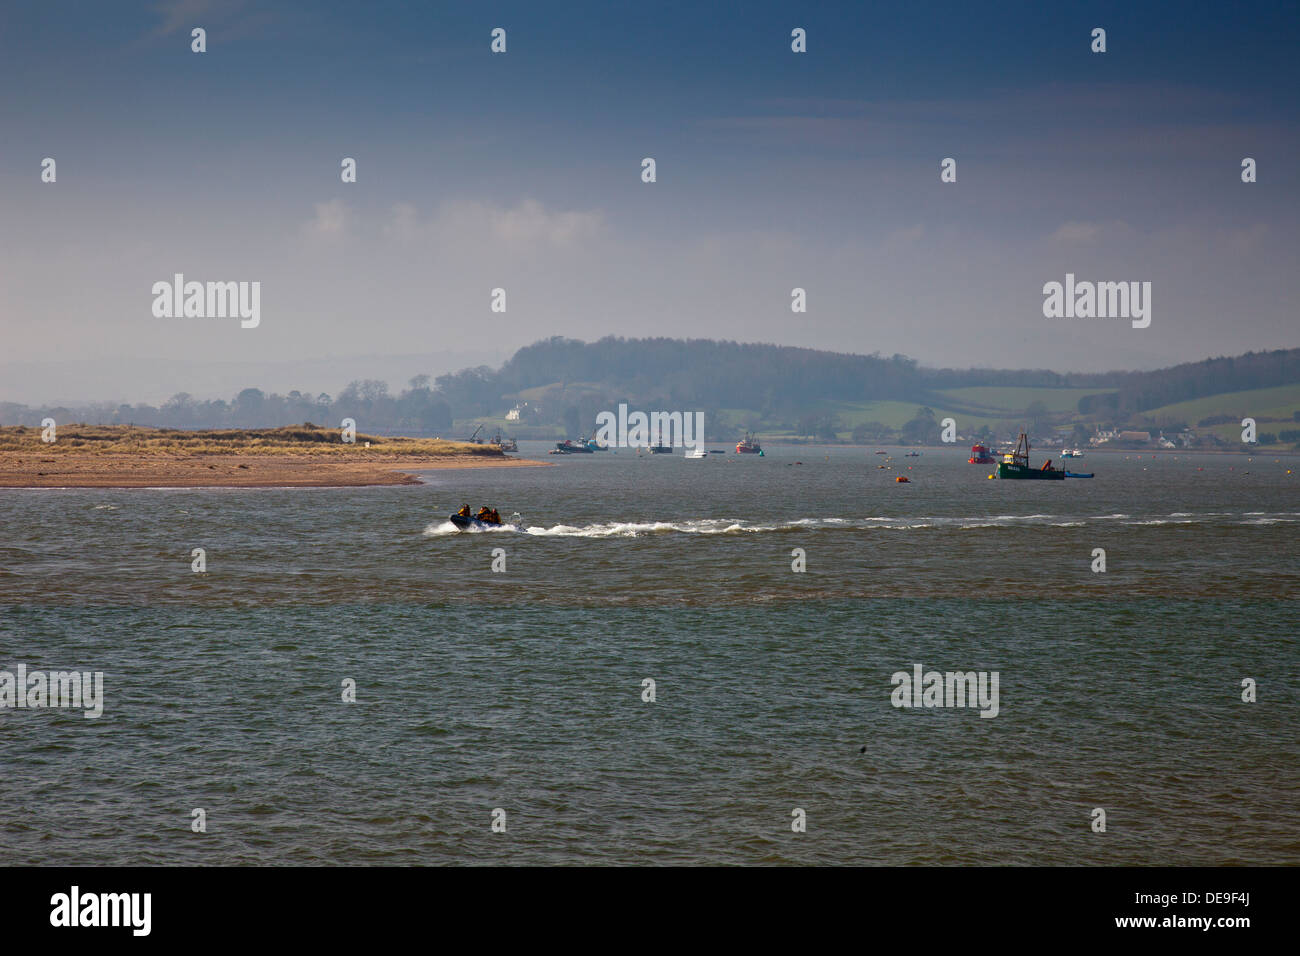 The Exmouth lifeboat crew practicing in the River Exe estuary at Exmouth, Devon, England, UK - Stock Image